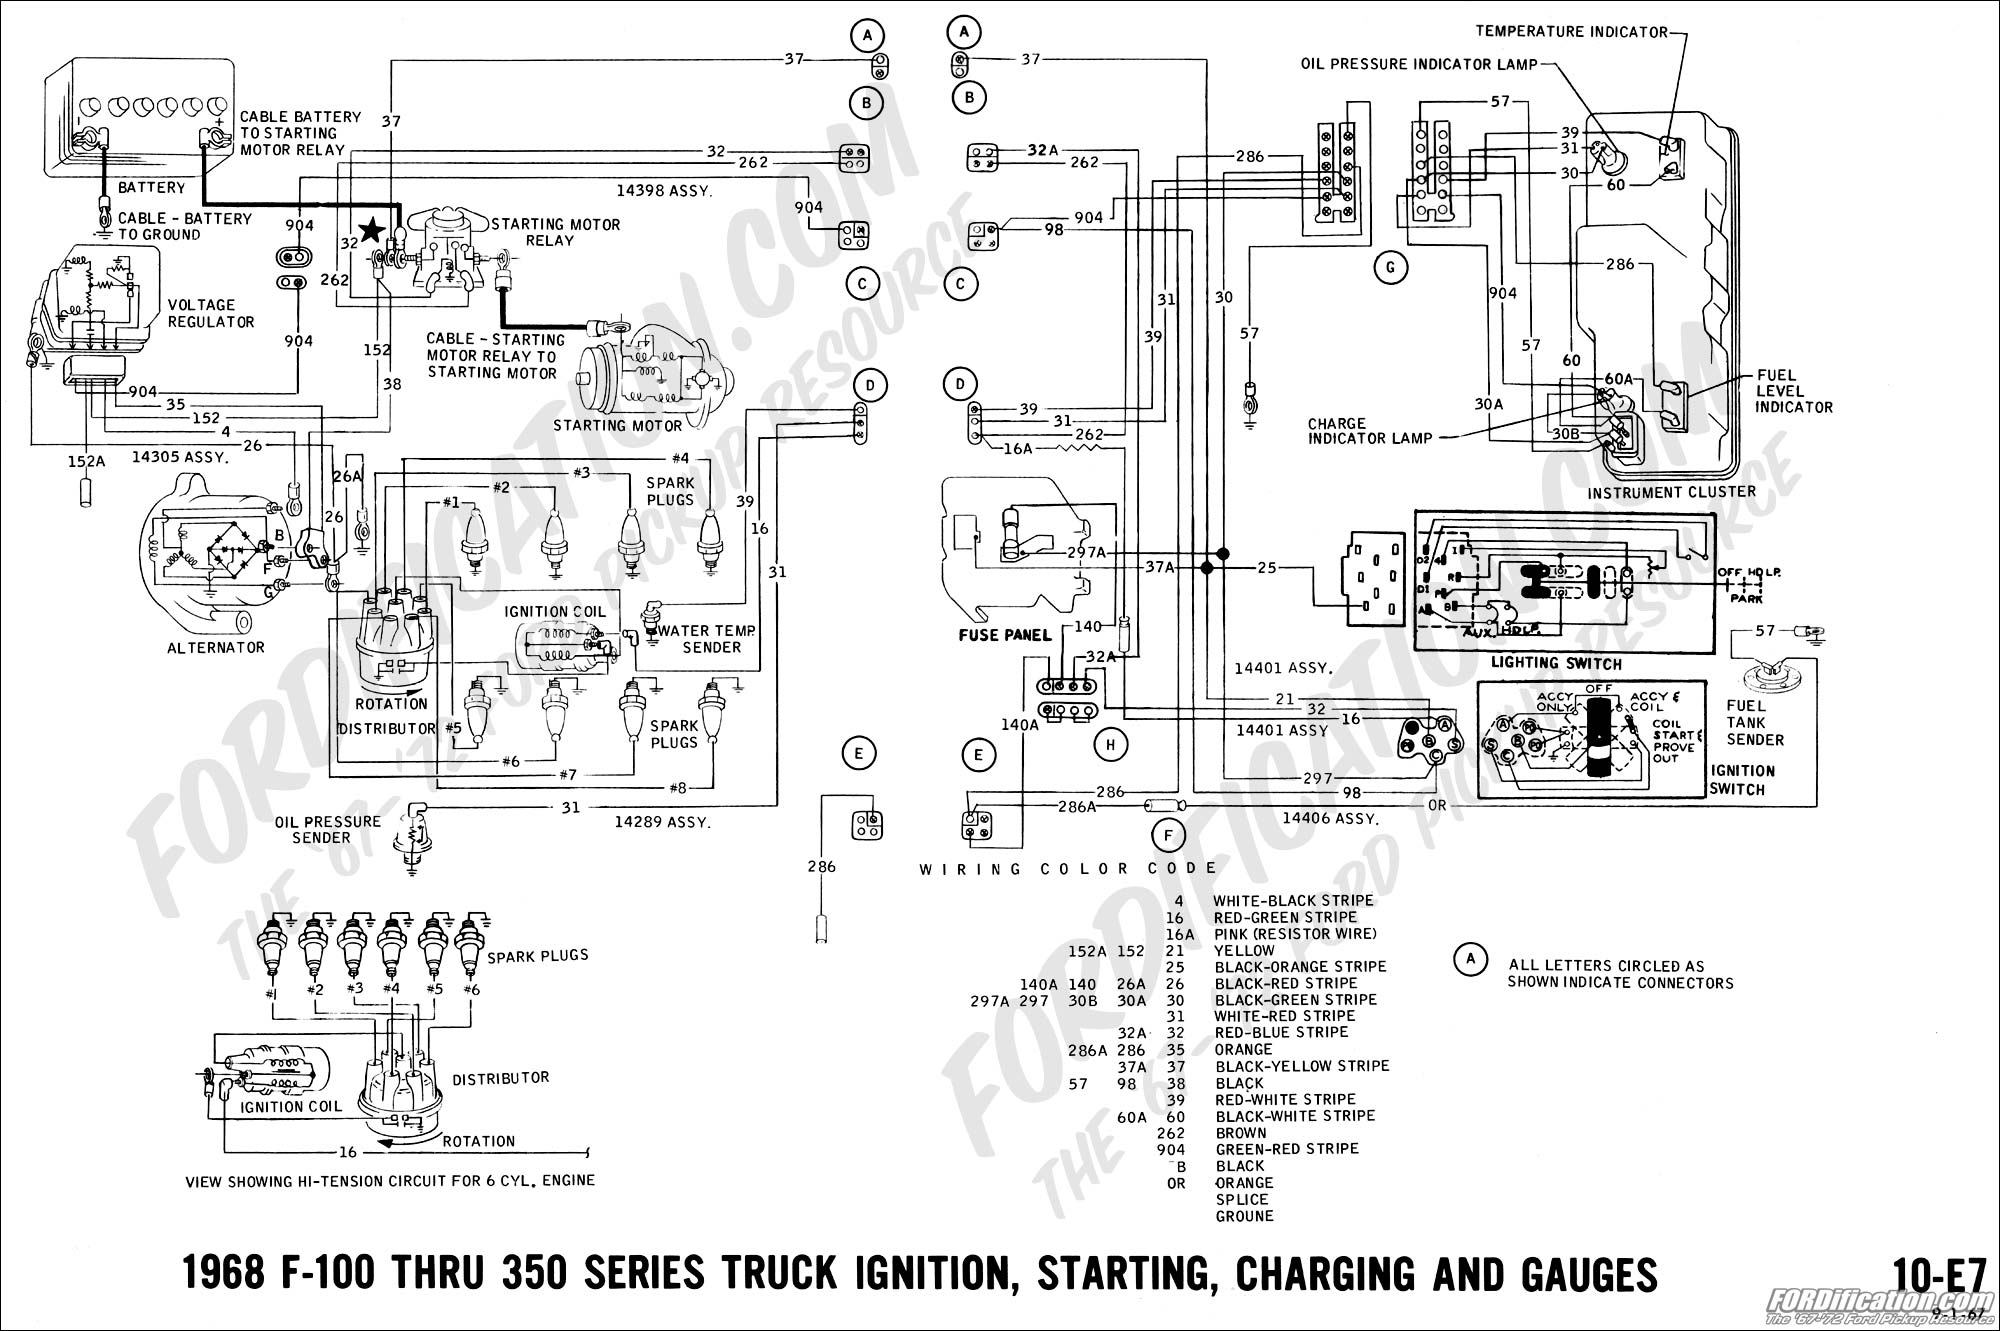 Wiring Diagram 13 Pin Socket Ford Ranger Truck Technical Drawings And Schematics Section H 1968 F 100 Thru 350 Ignition Starting Charging Gauges